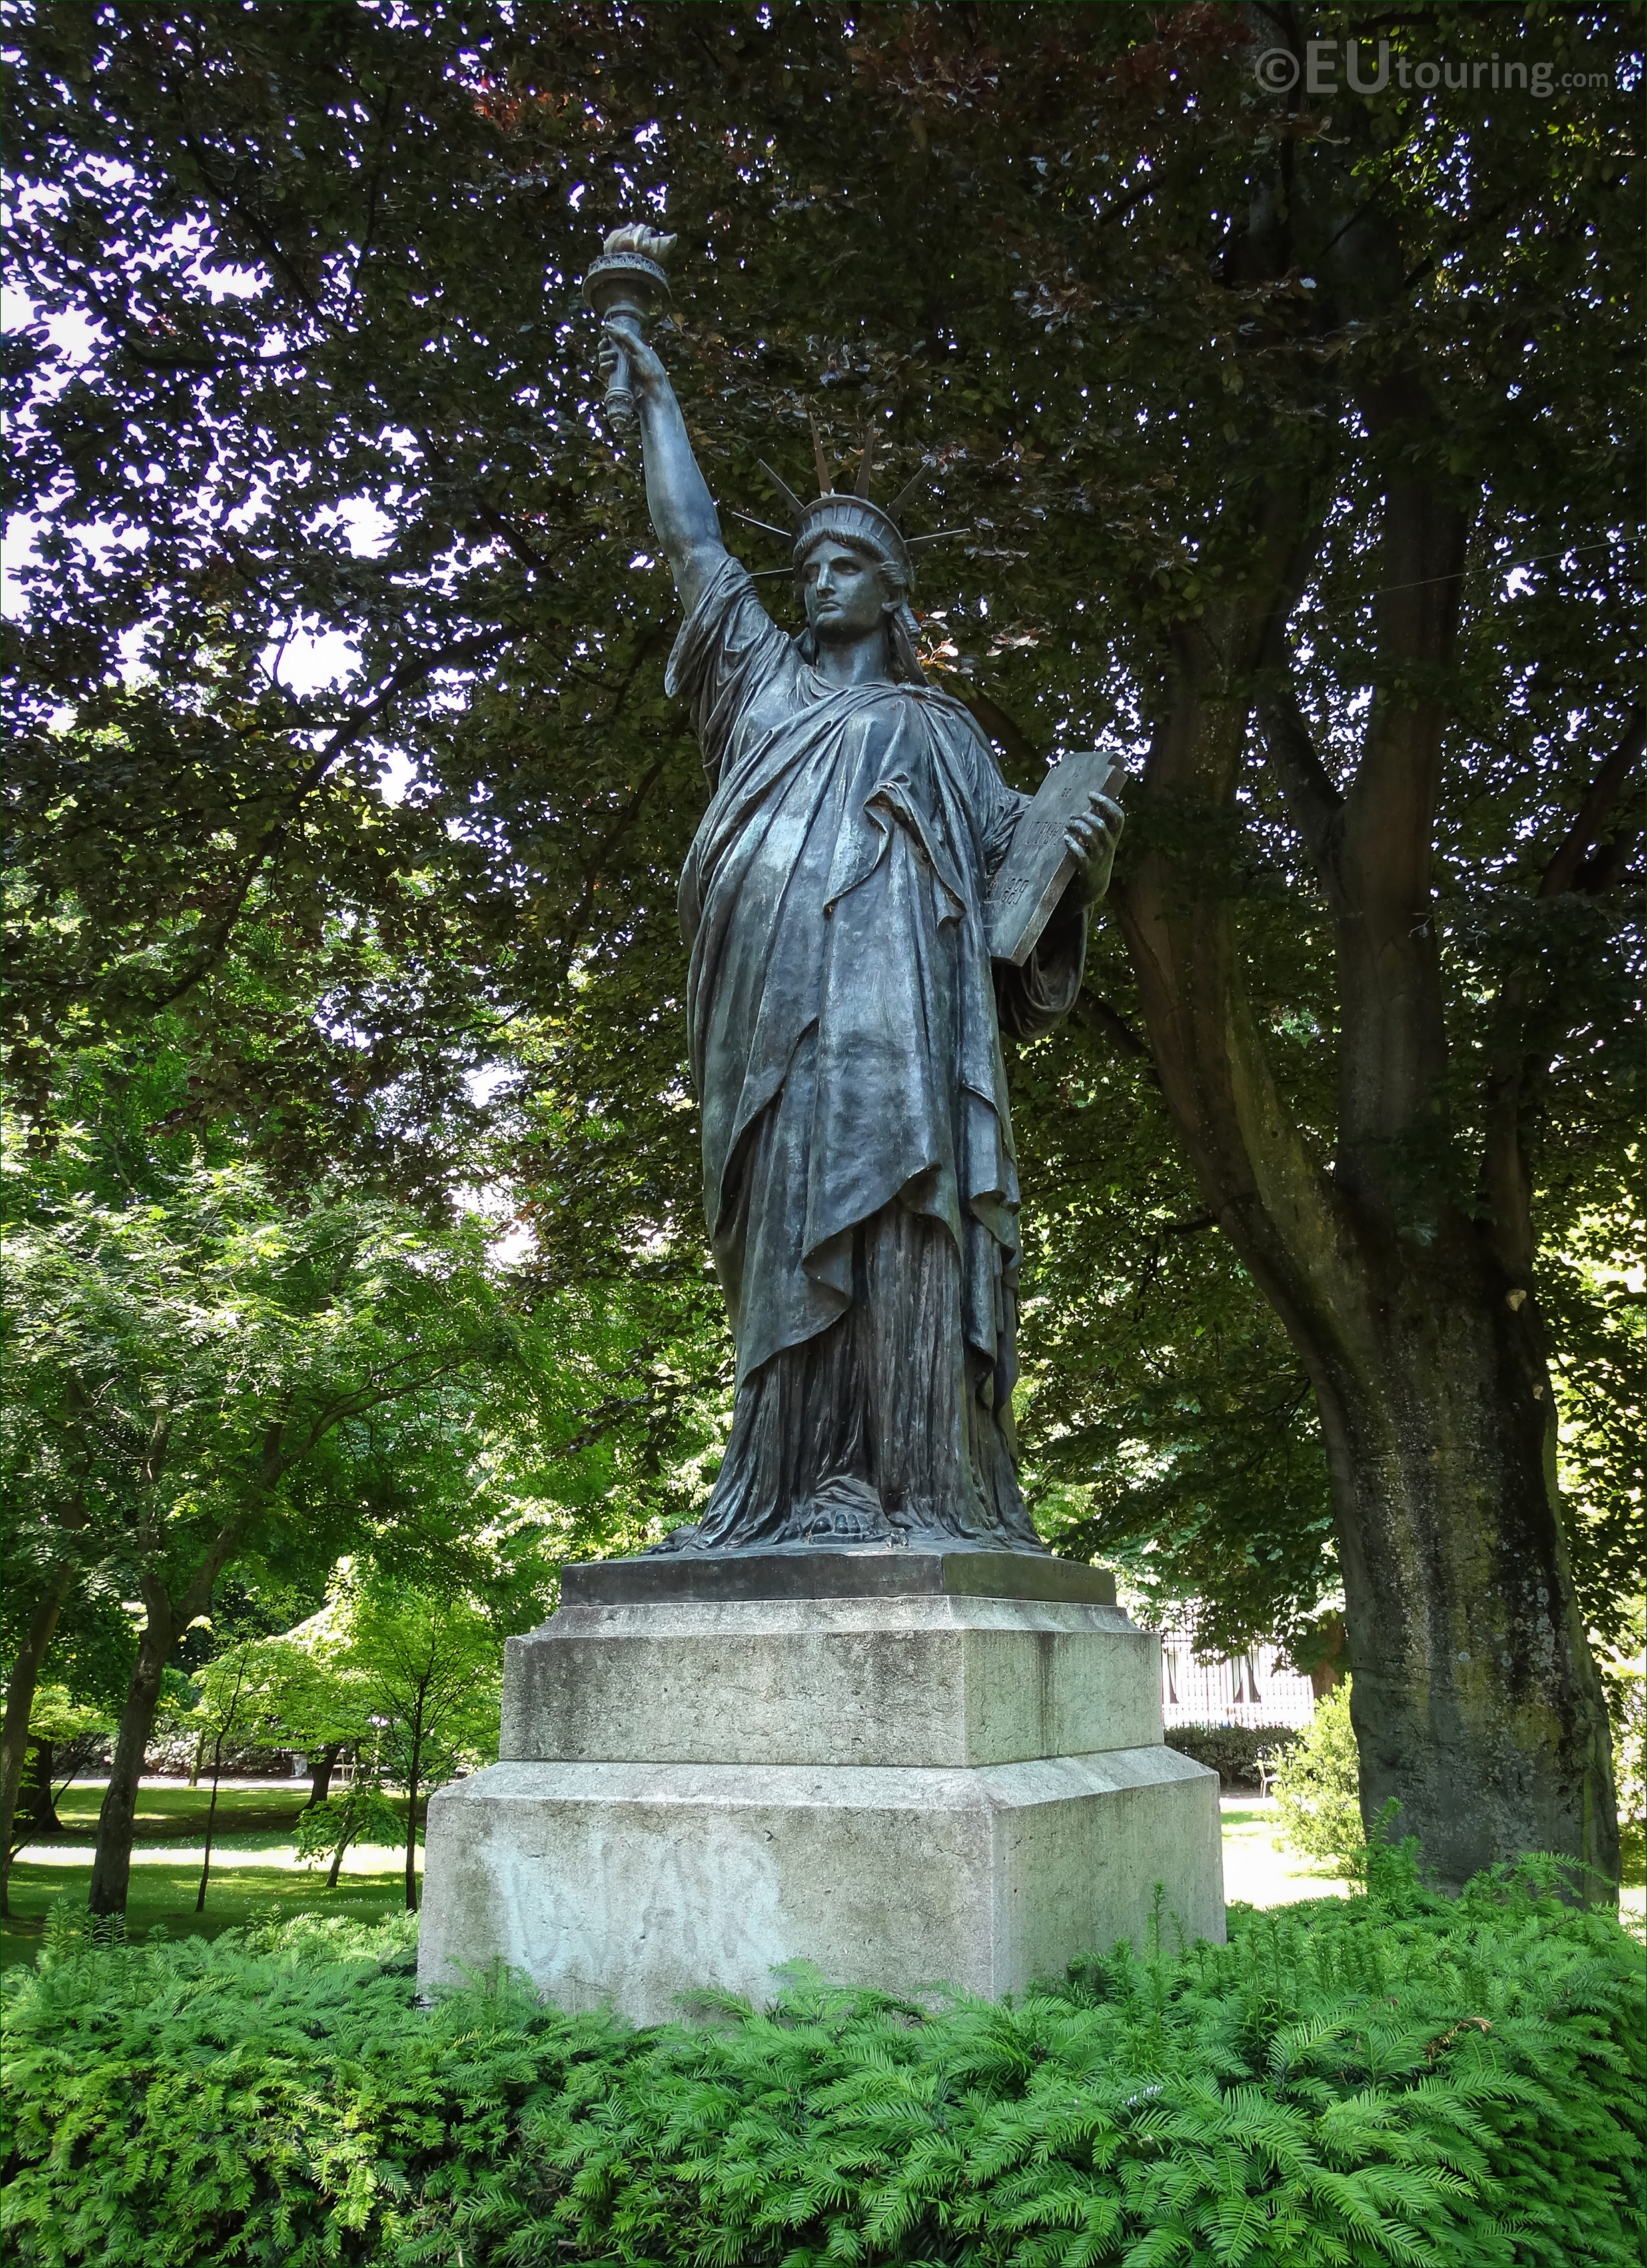 photos of statue of liberty in luxembourg gardens paris page 301